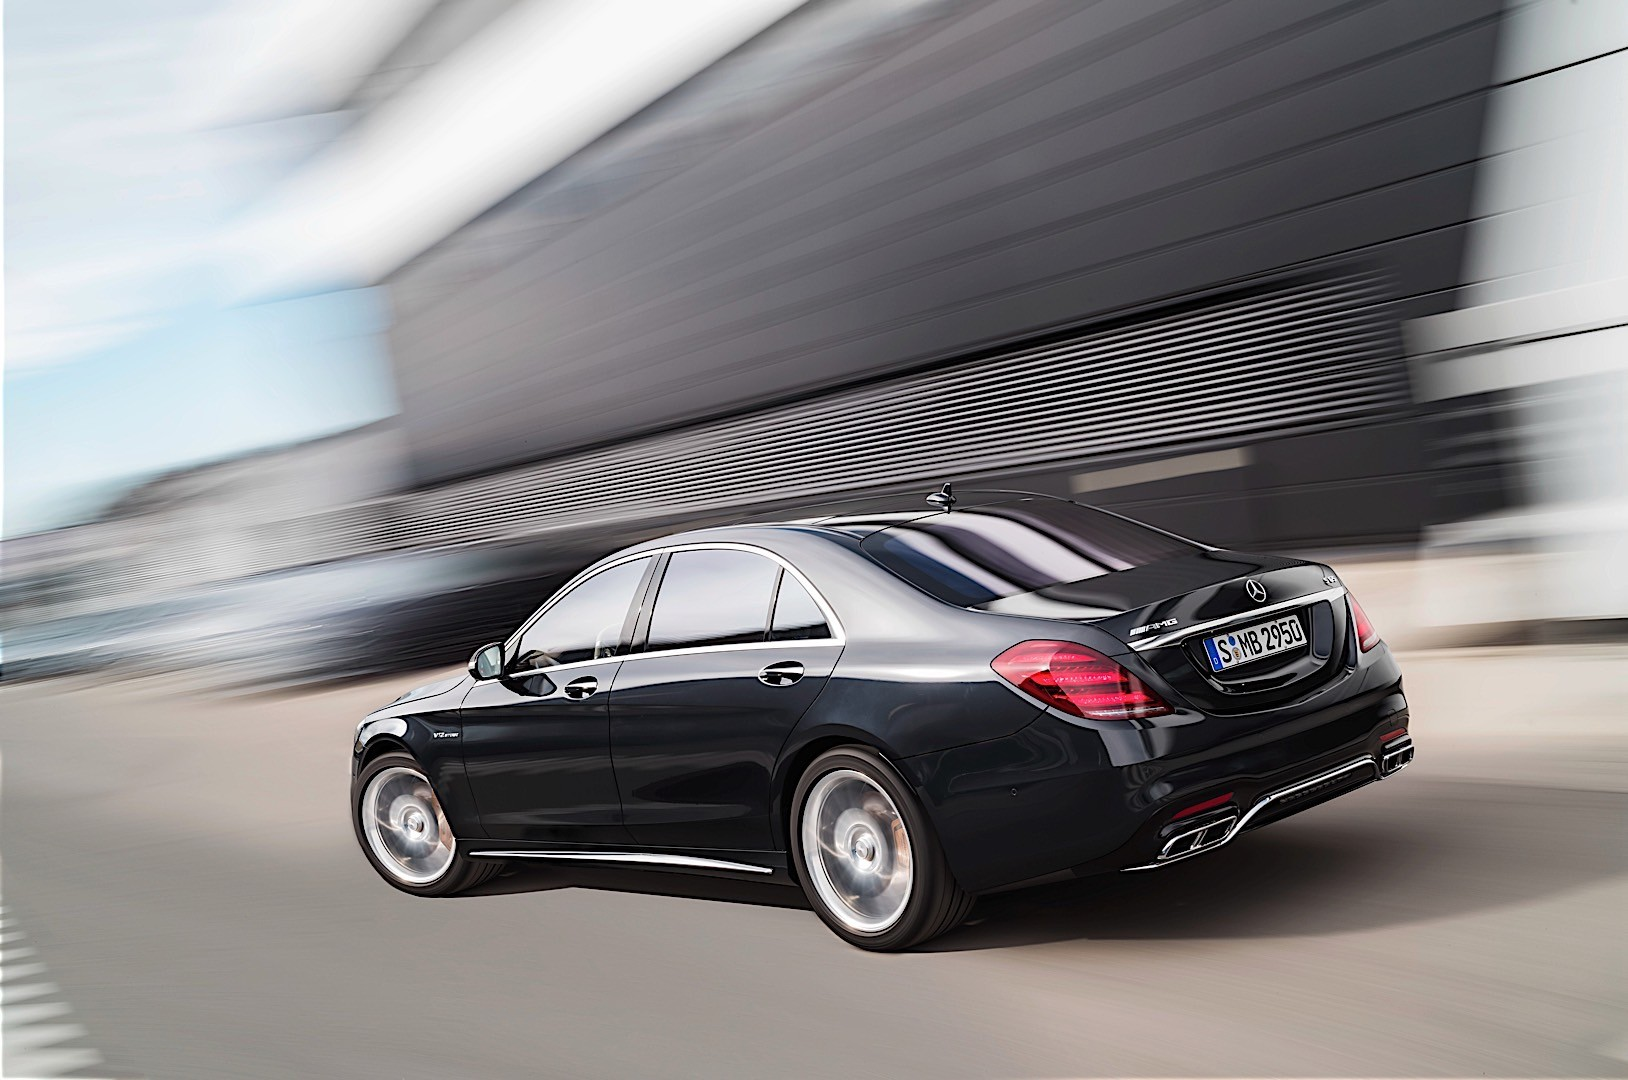 Mercedes S Class Amg Price In India